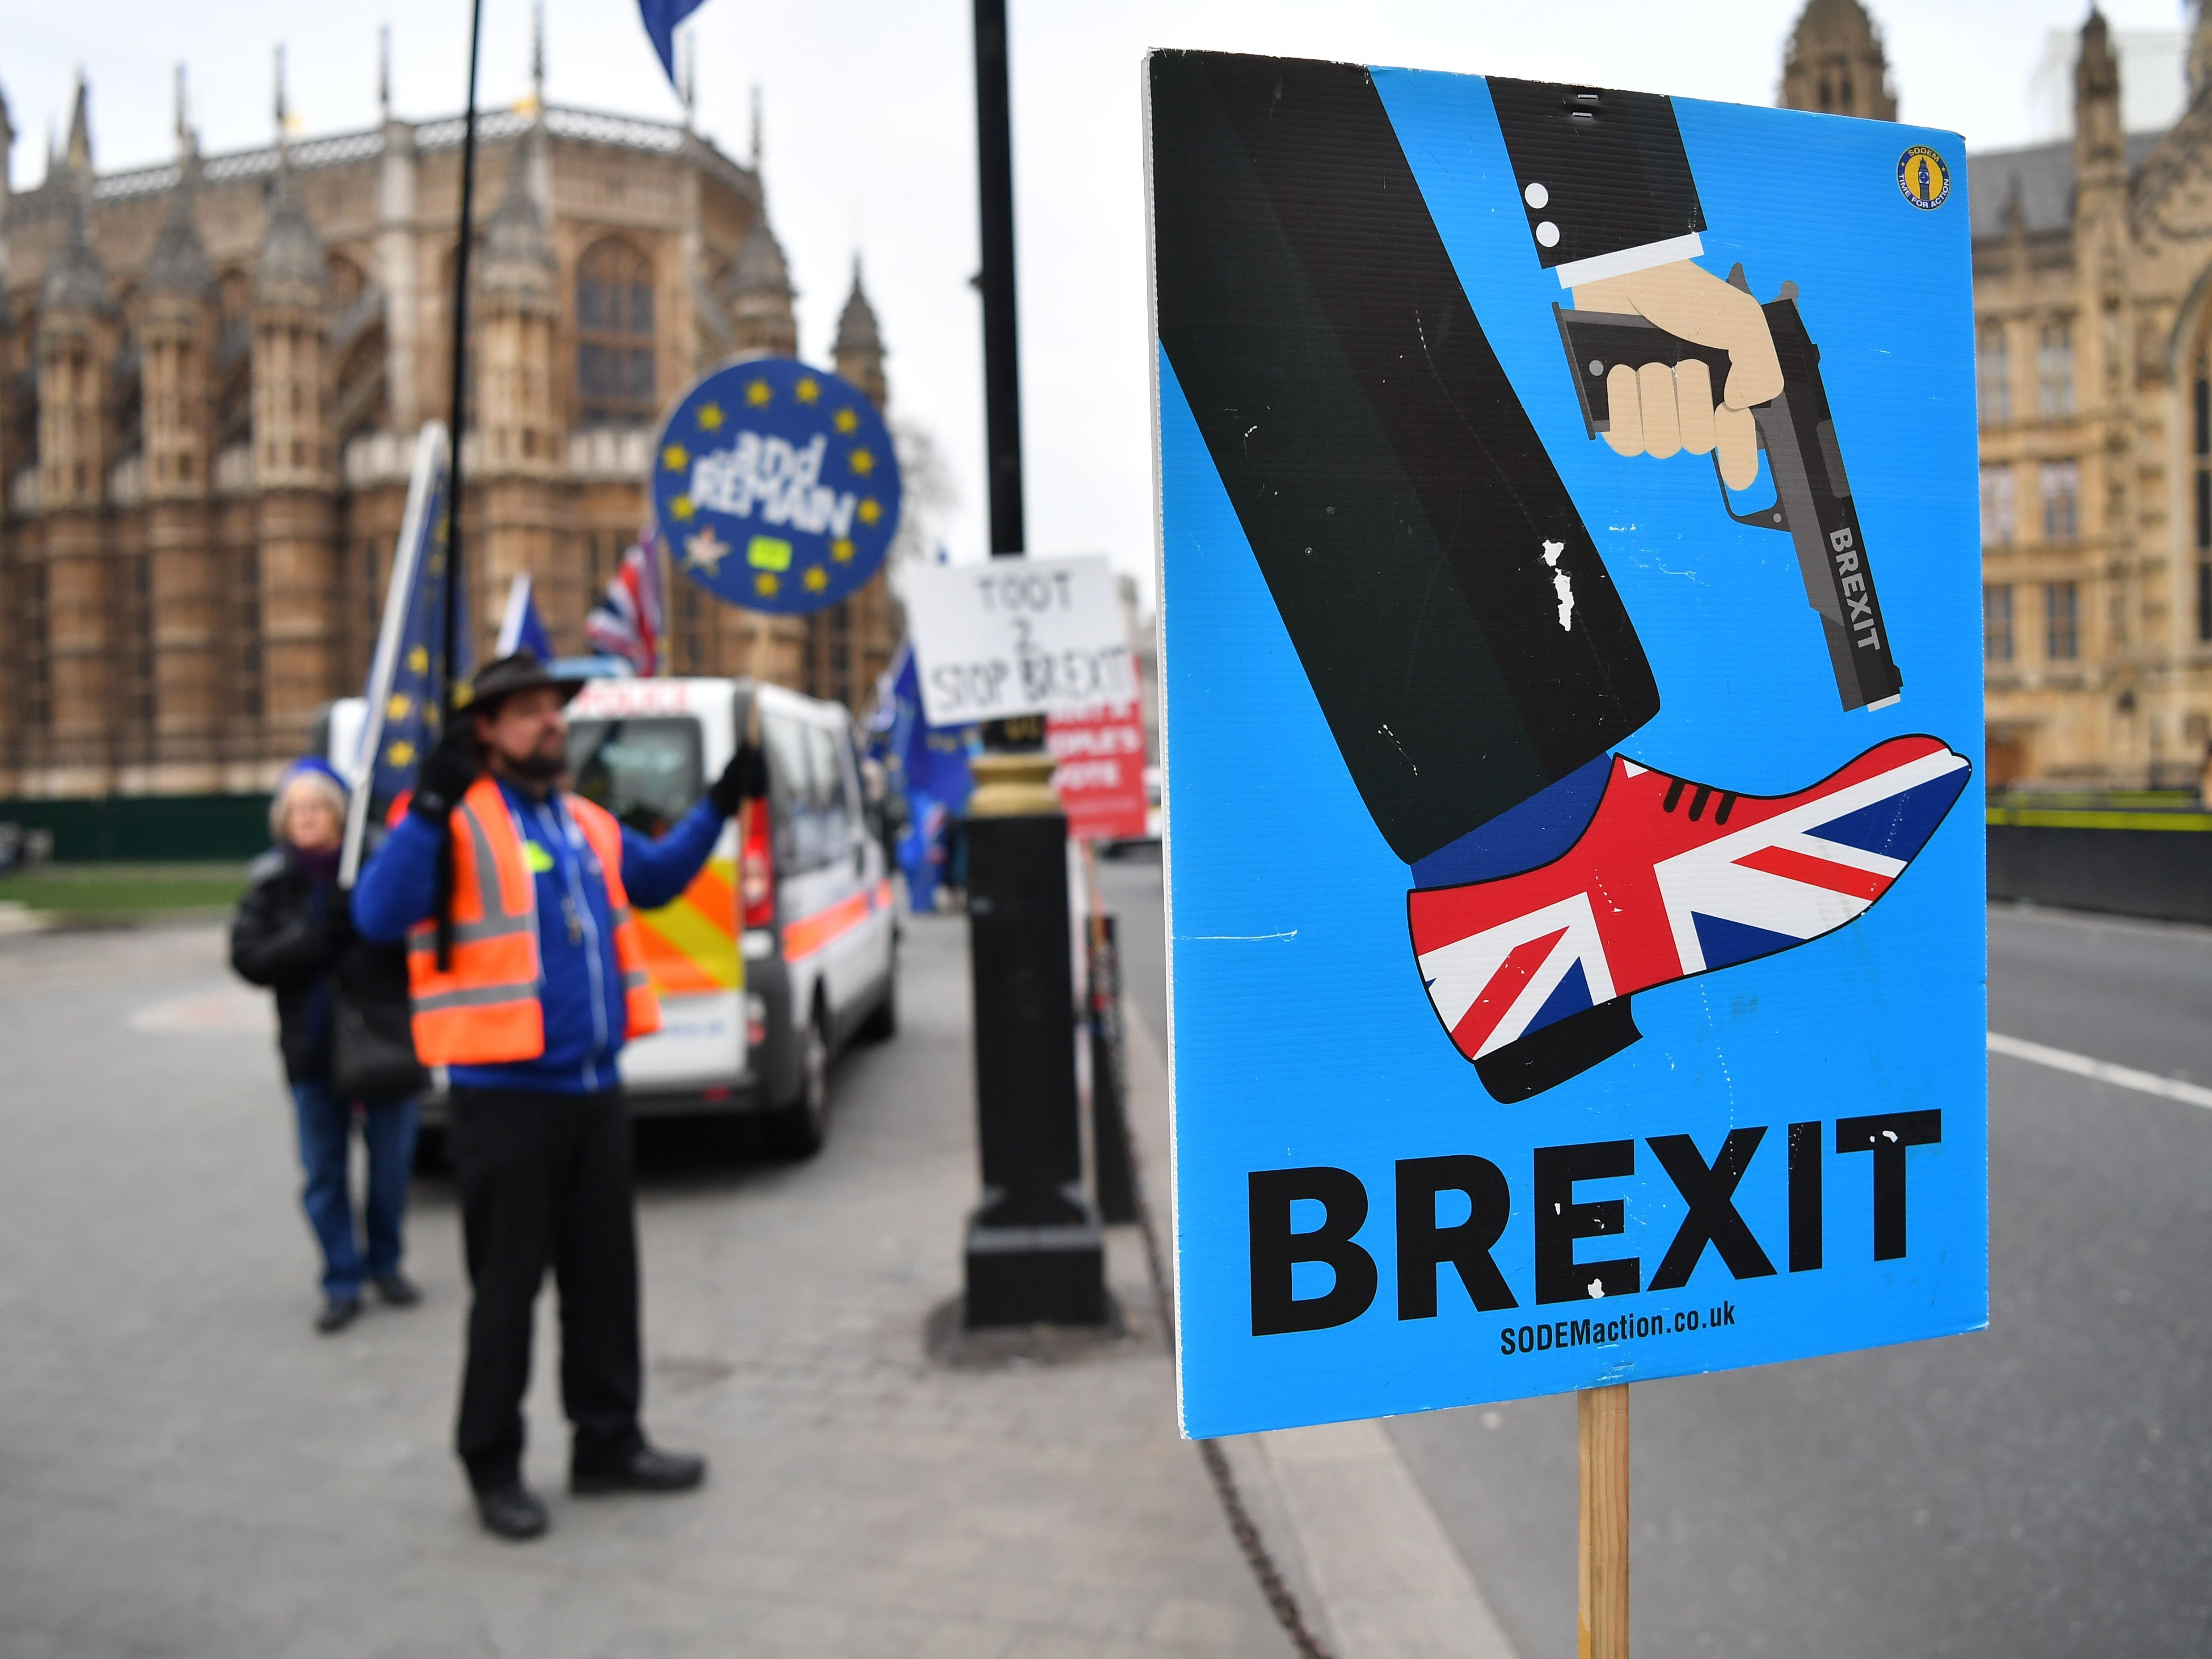 An anti-Brexit protester holds a placard showing a graphic of a person shooting them self in the foot, with the shoe on that foot decorated in the colors of the Union Flag, outside the Houses of Parliament in London on Jan. 10, 2019.